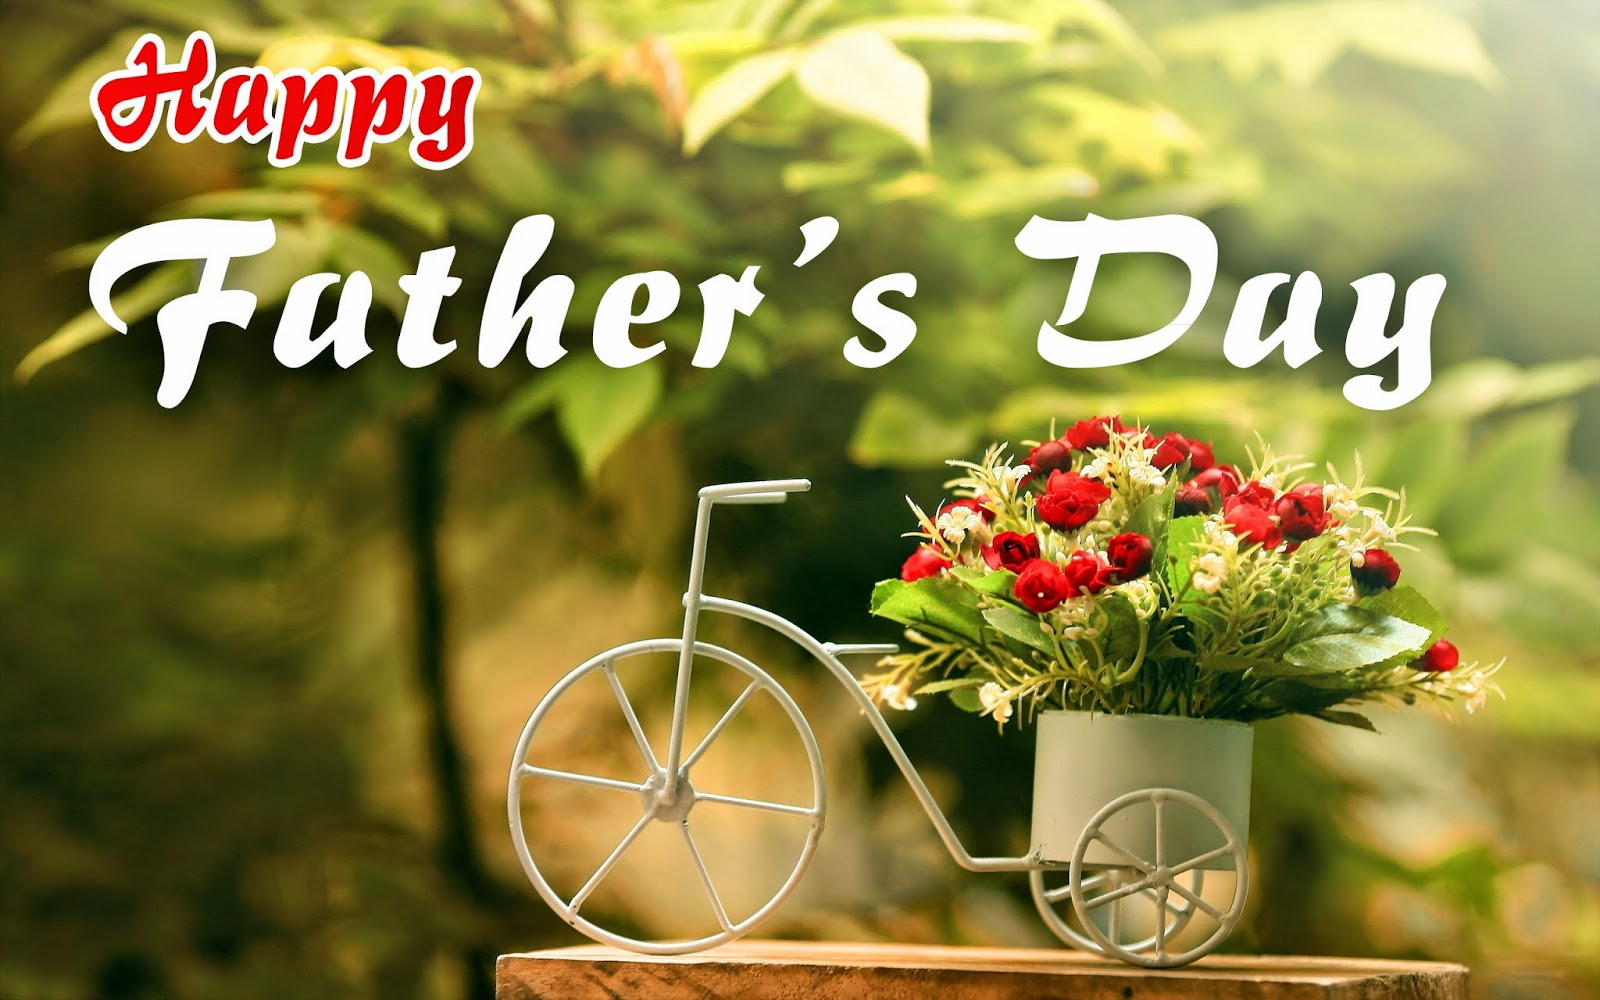 Happy Fathers Day Images Pictures Wallpapers Download 1600x1000 1600x1000